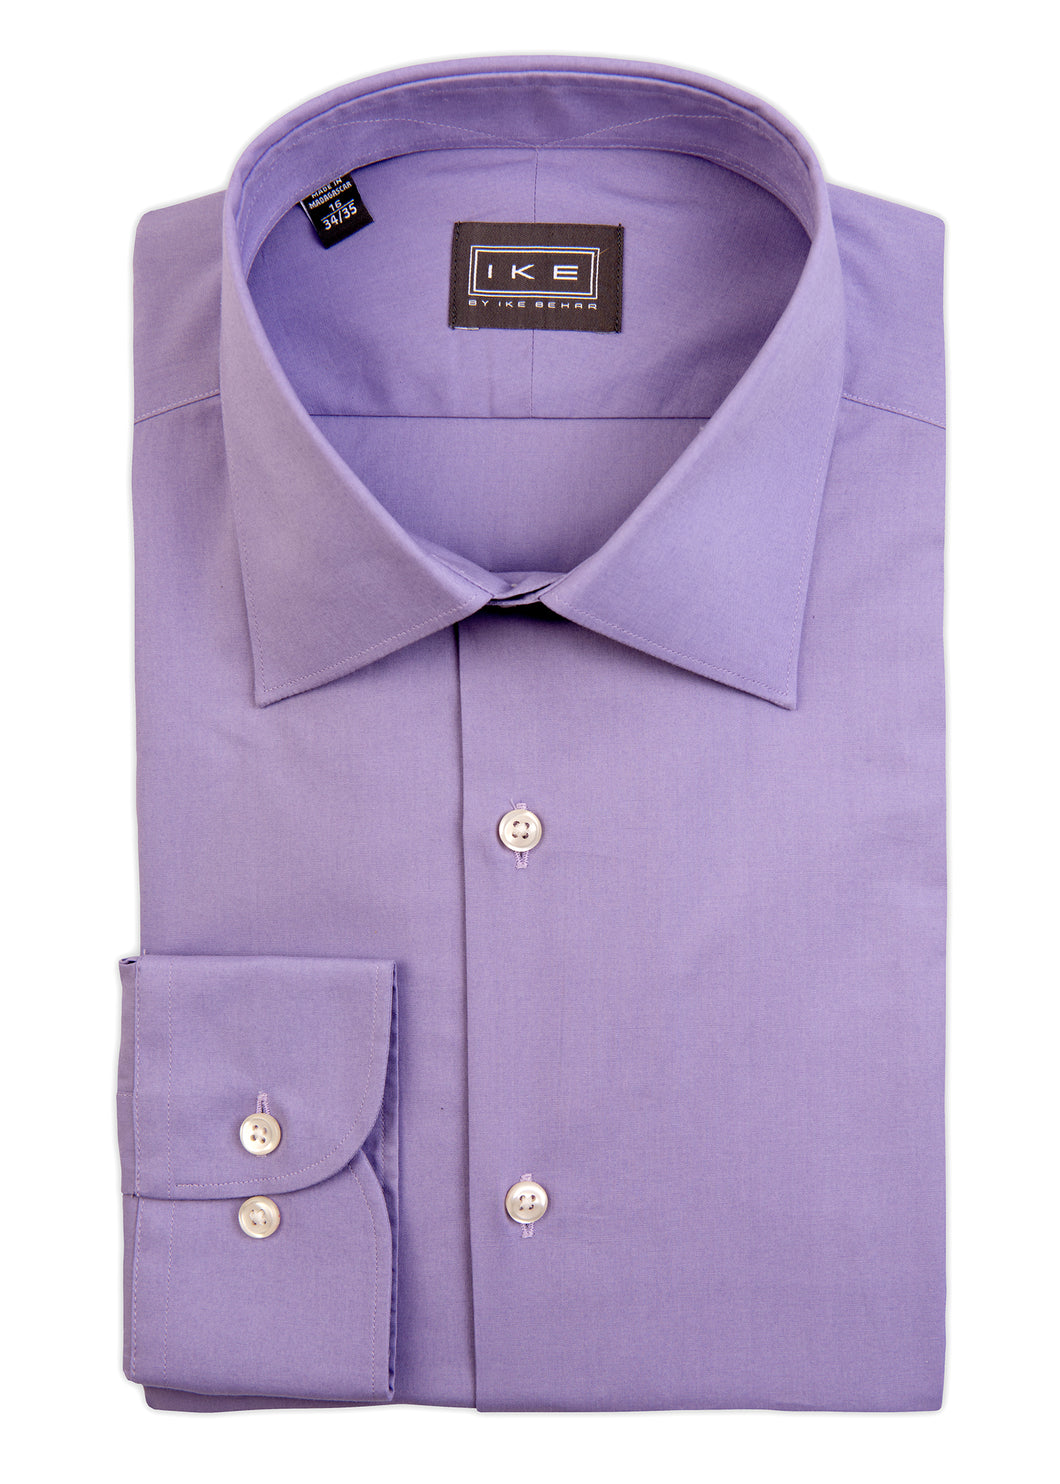 Lavender Broadcloth Ike by Ike Behar Dress Shirt